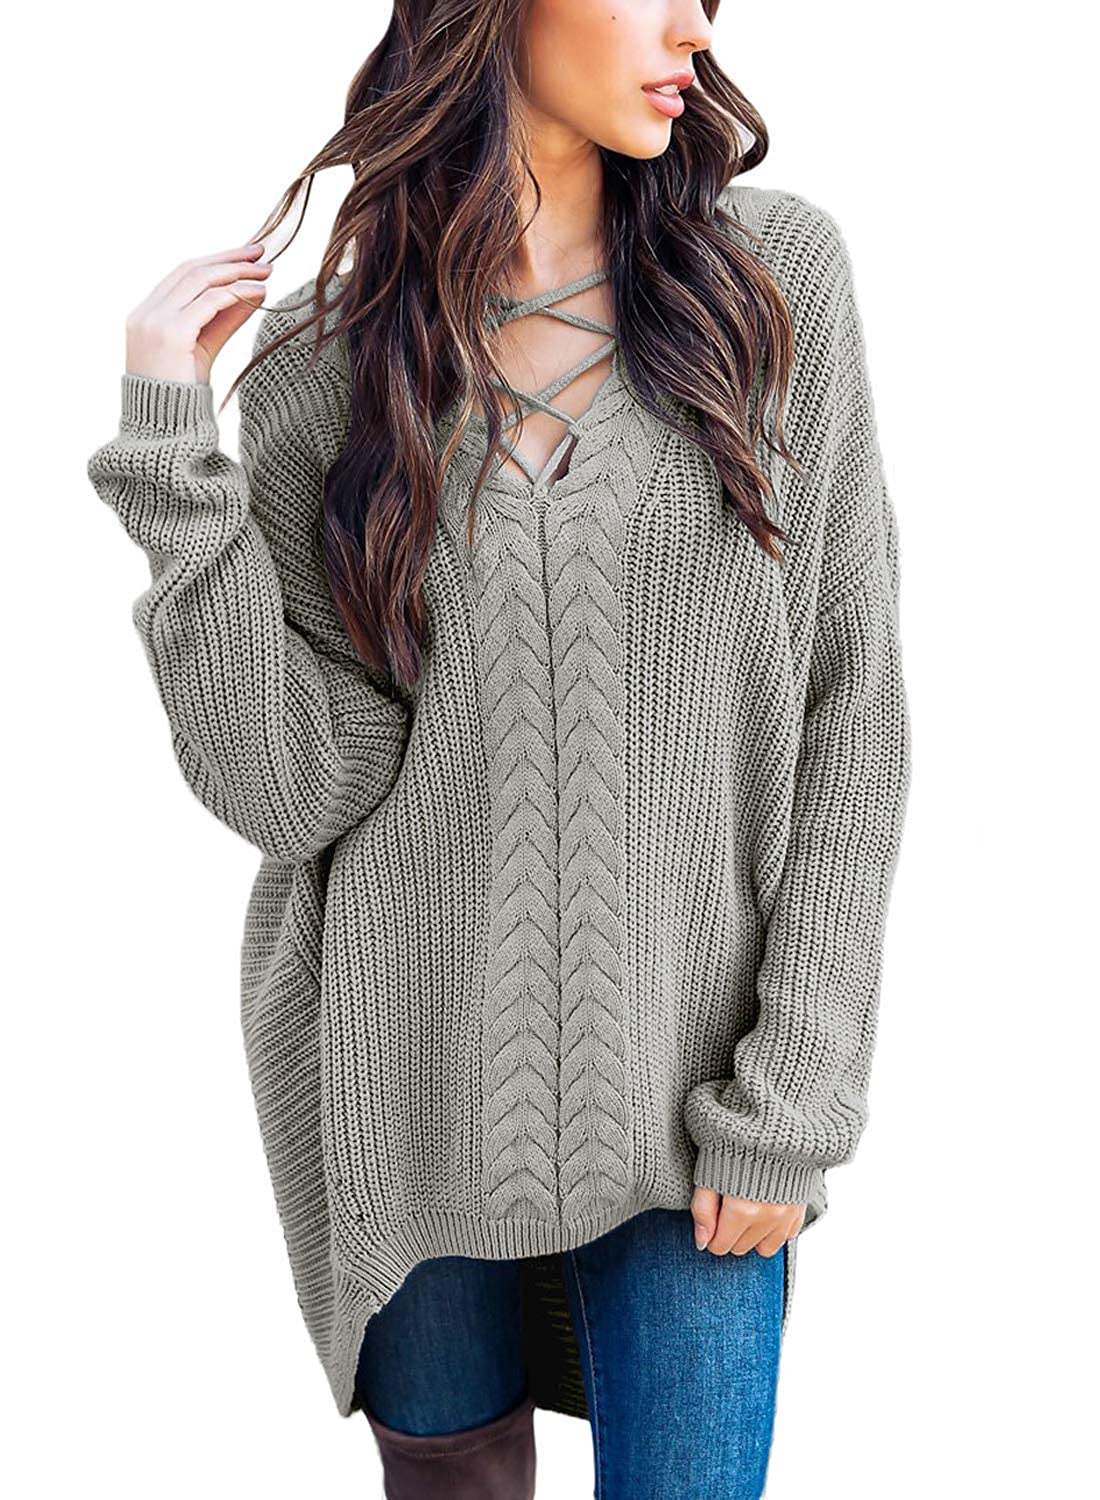 fc7fef5784 AlvaQ Women s Crisscross High Low Pullover Sweaters Tunic Tops at ...